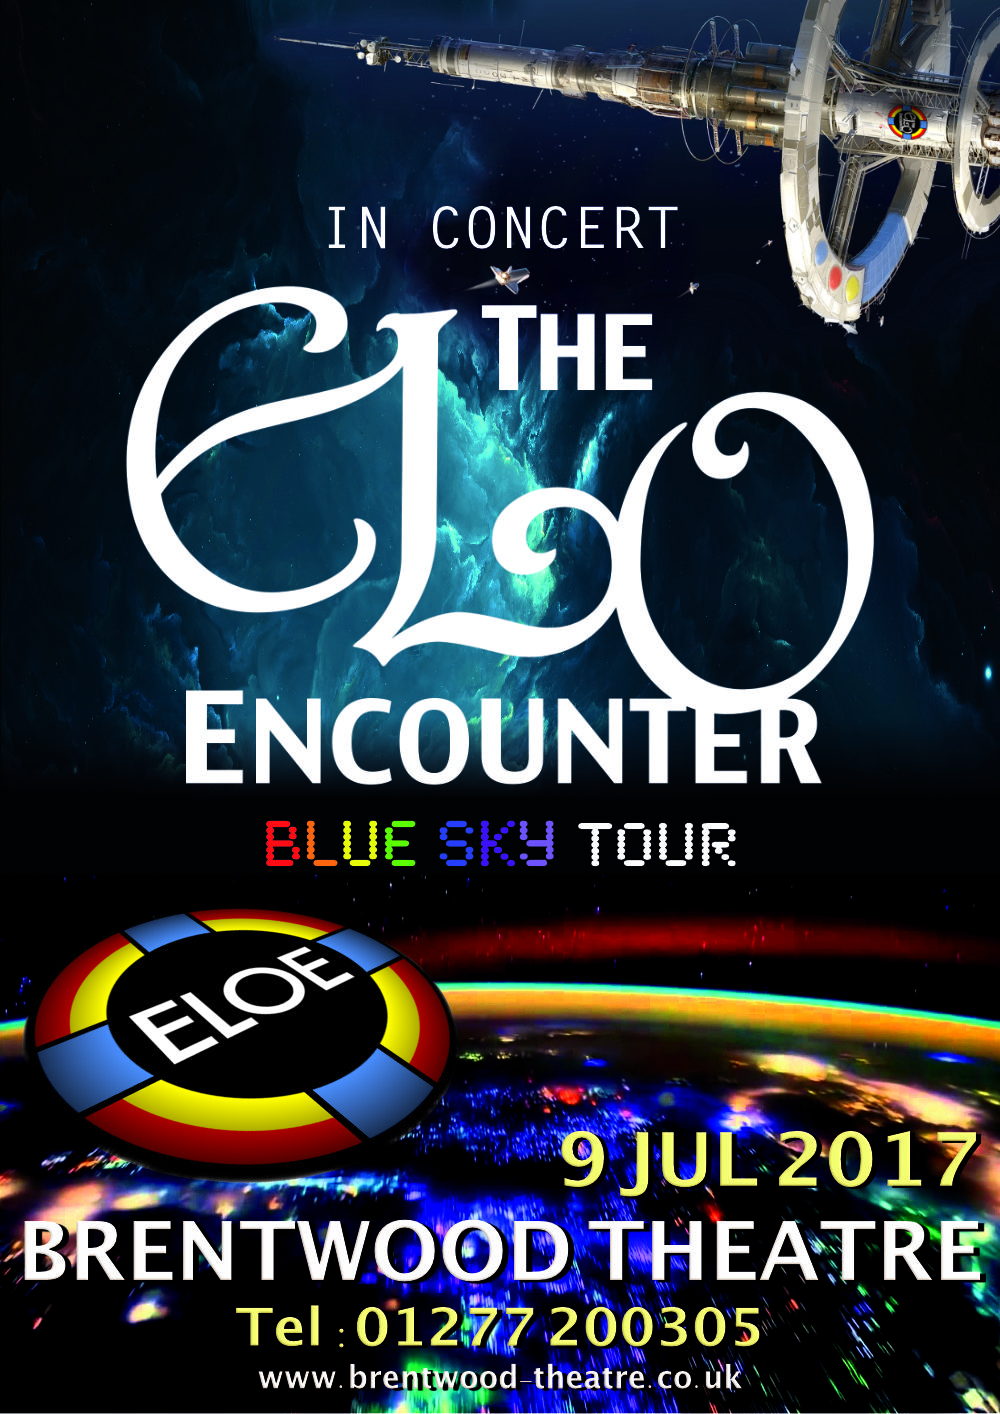 Brentwood Theatre - ELO Encounter Poster